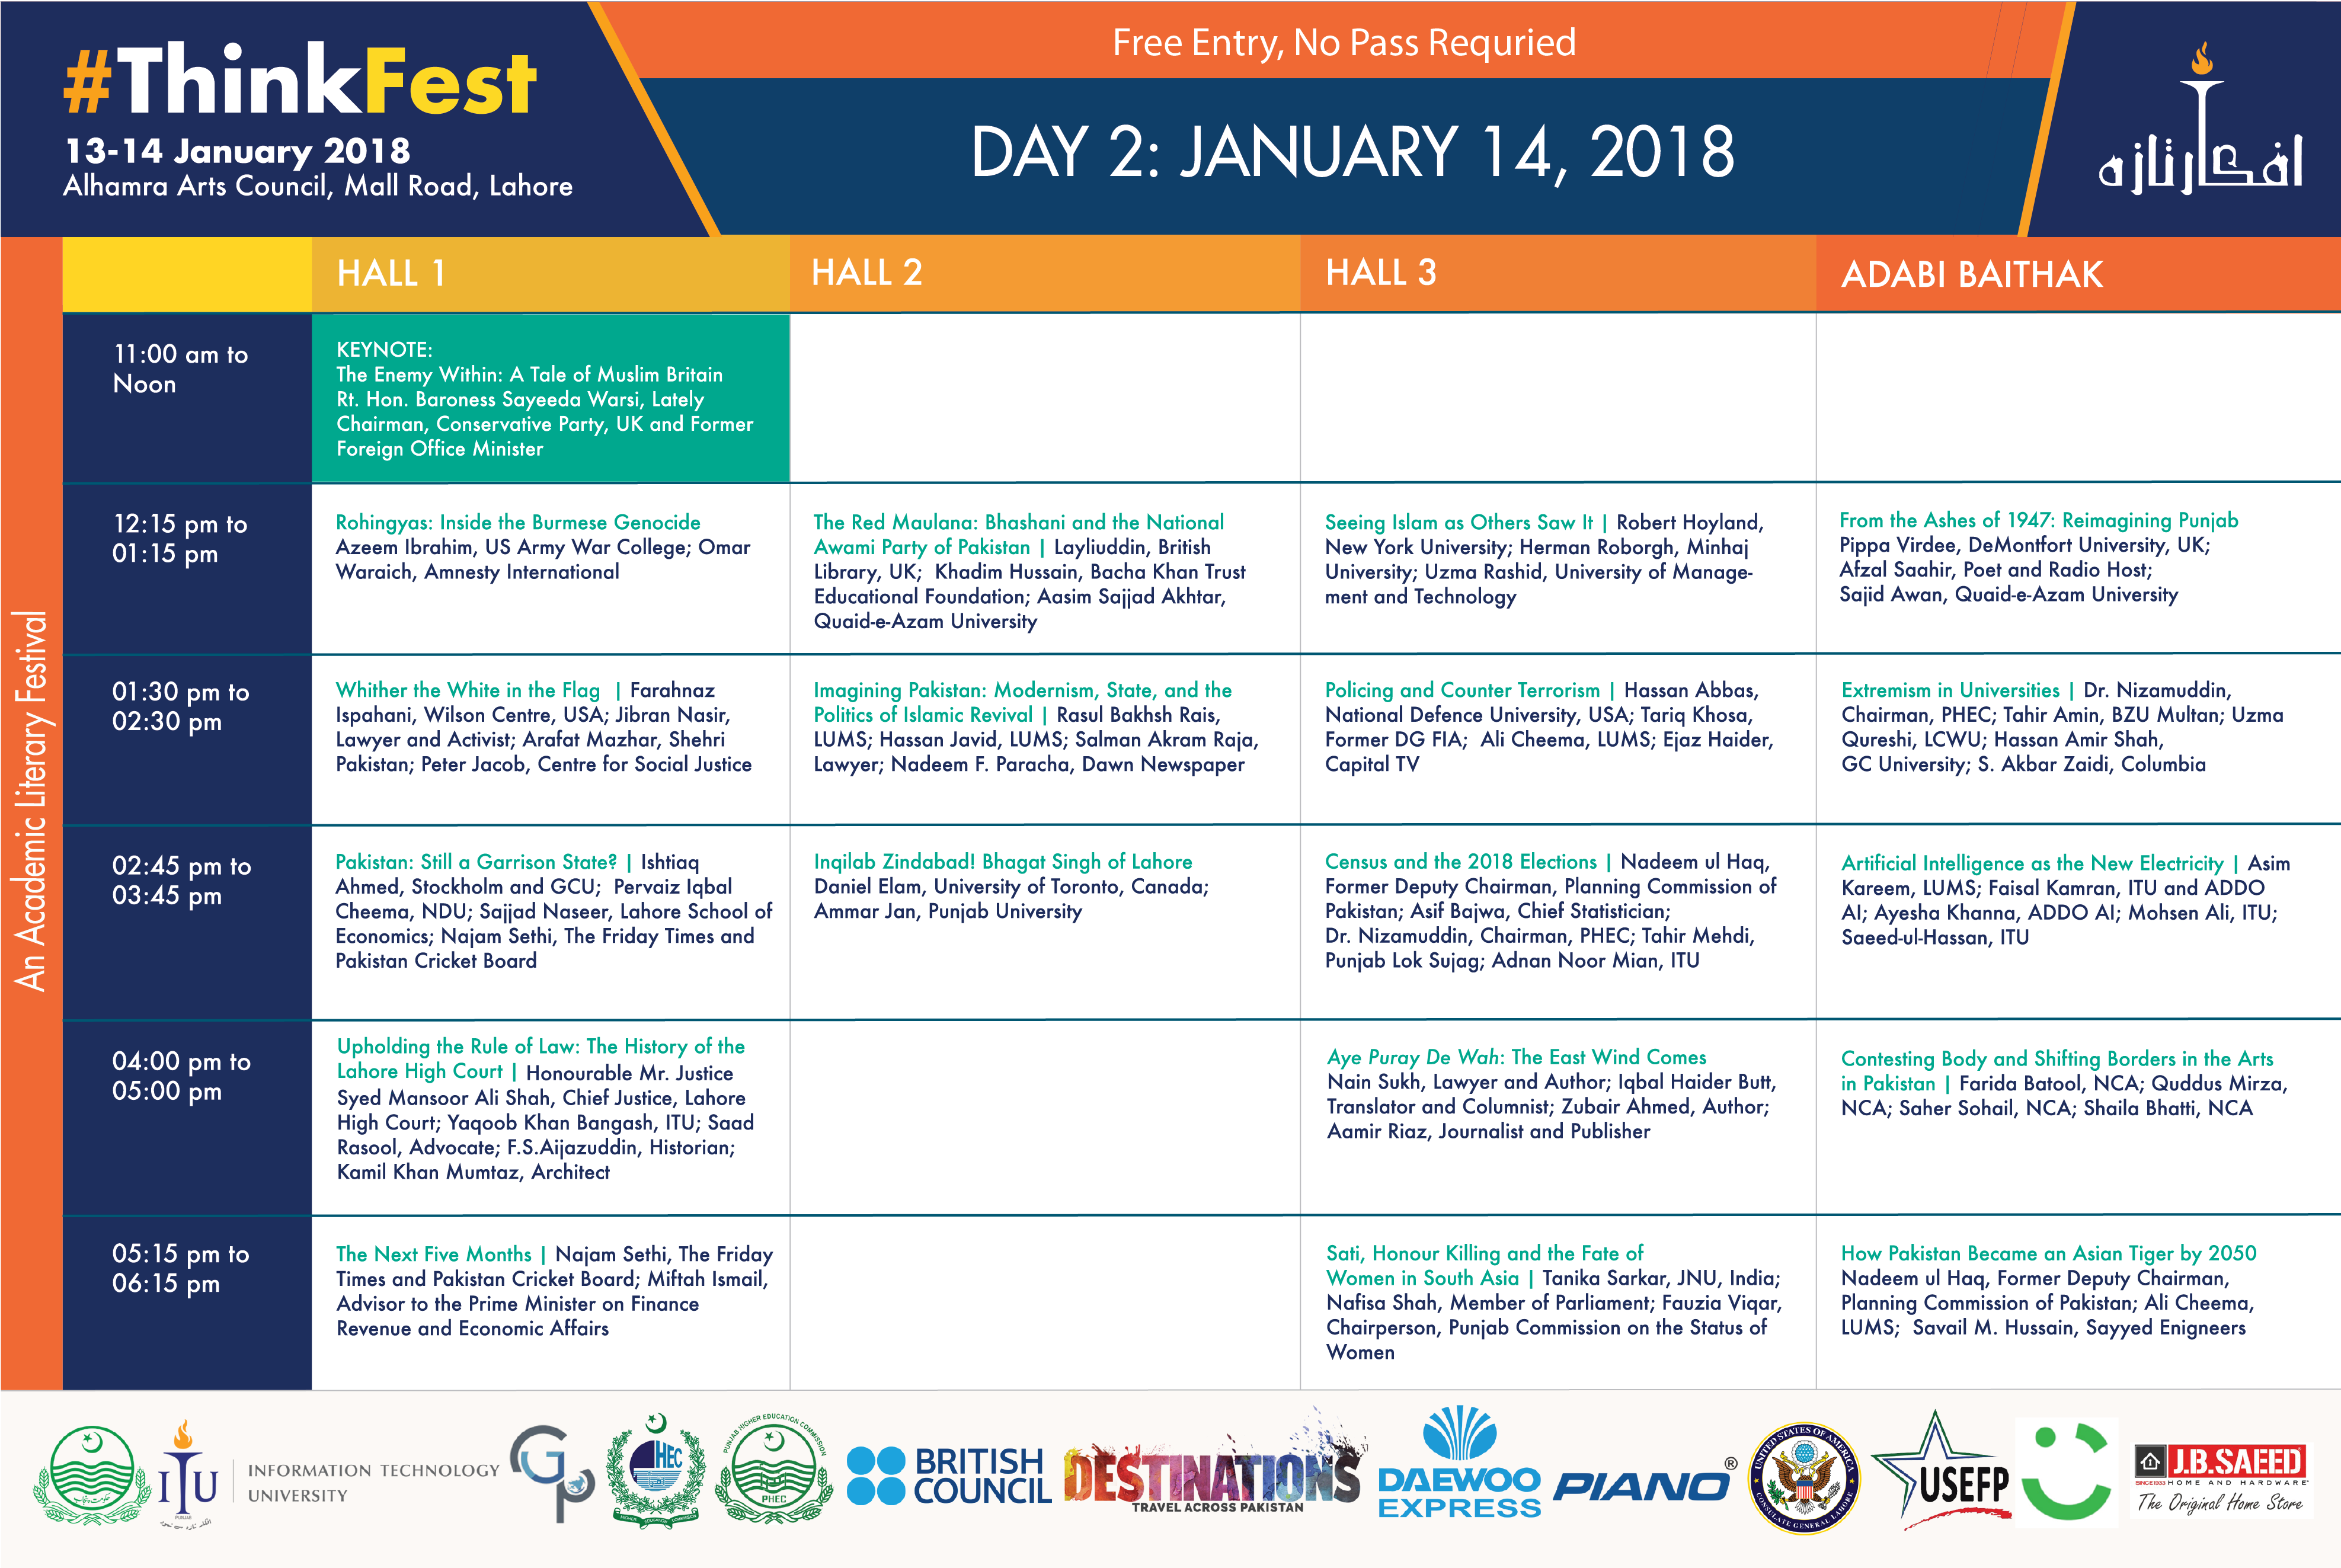 thinkfest day 2 schedule